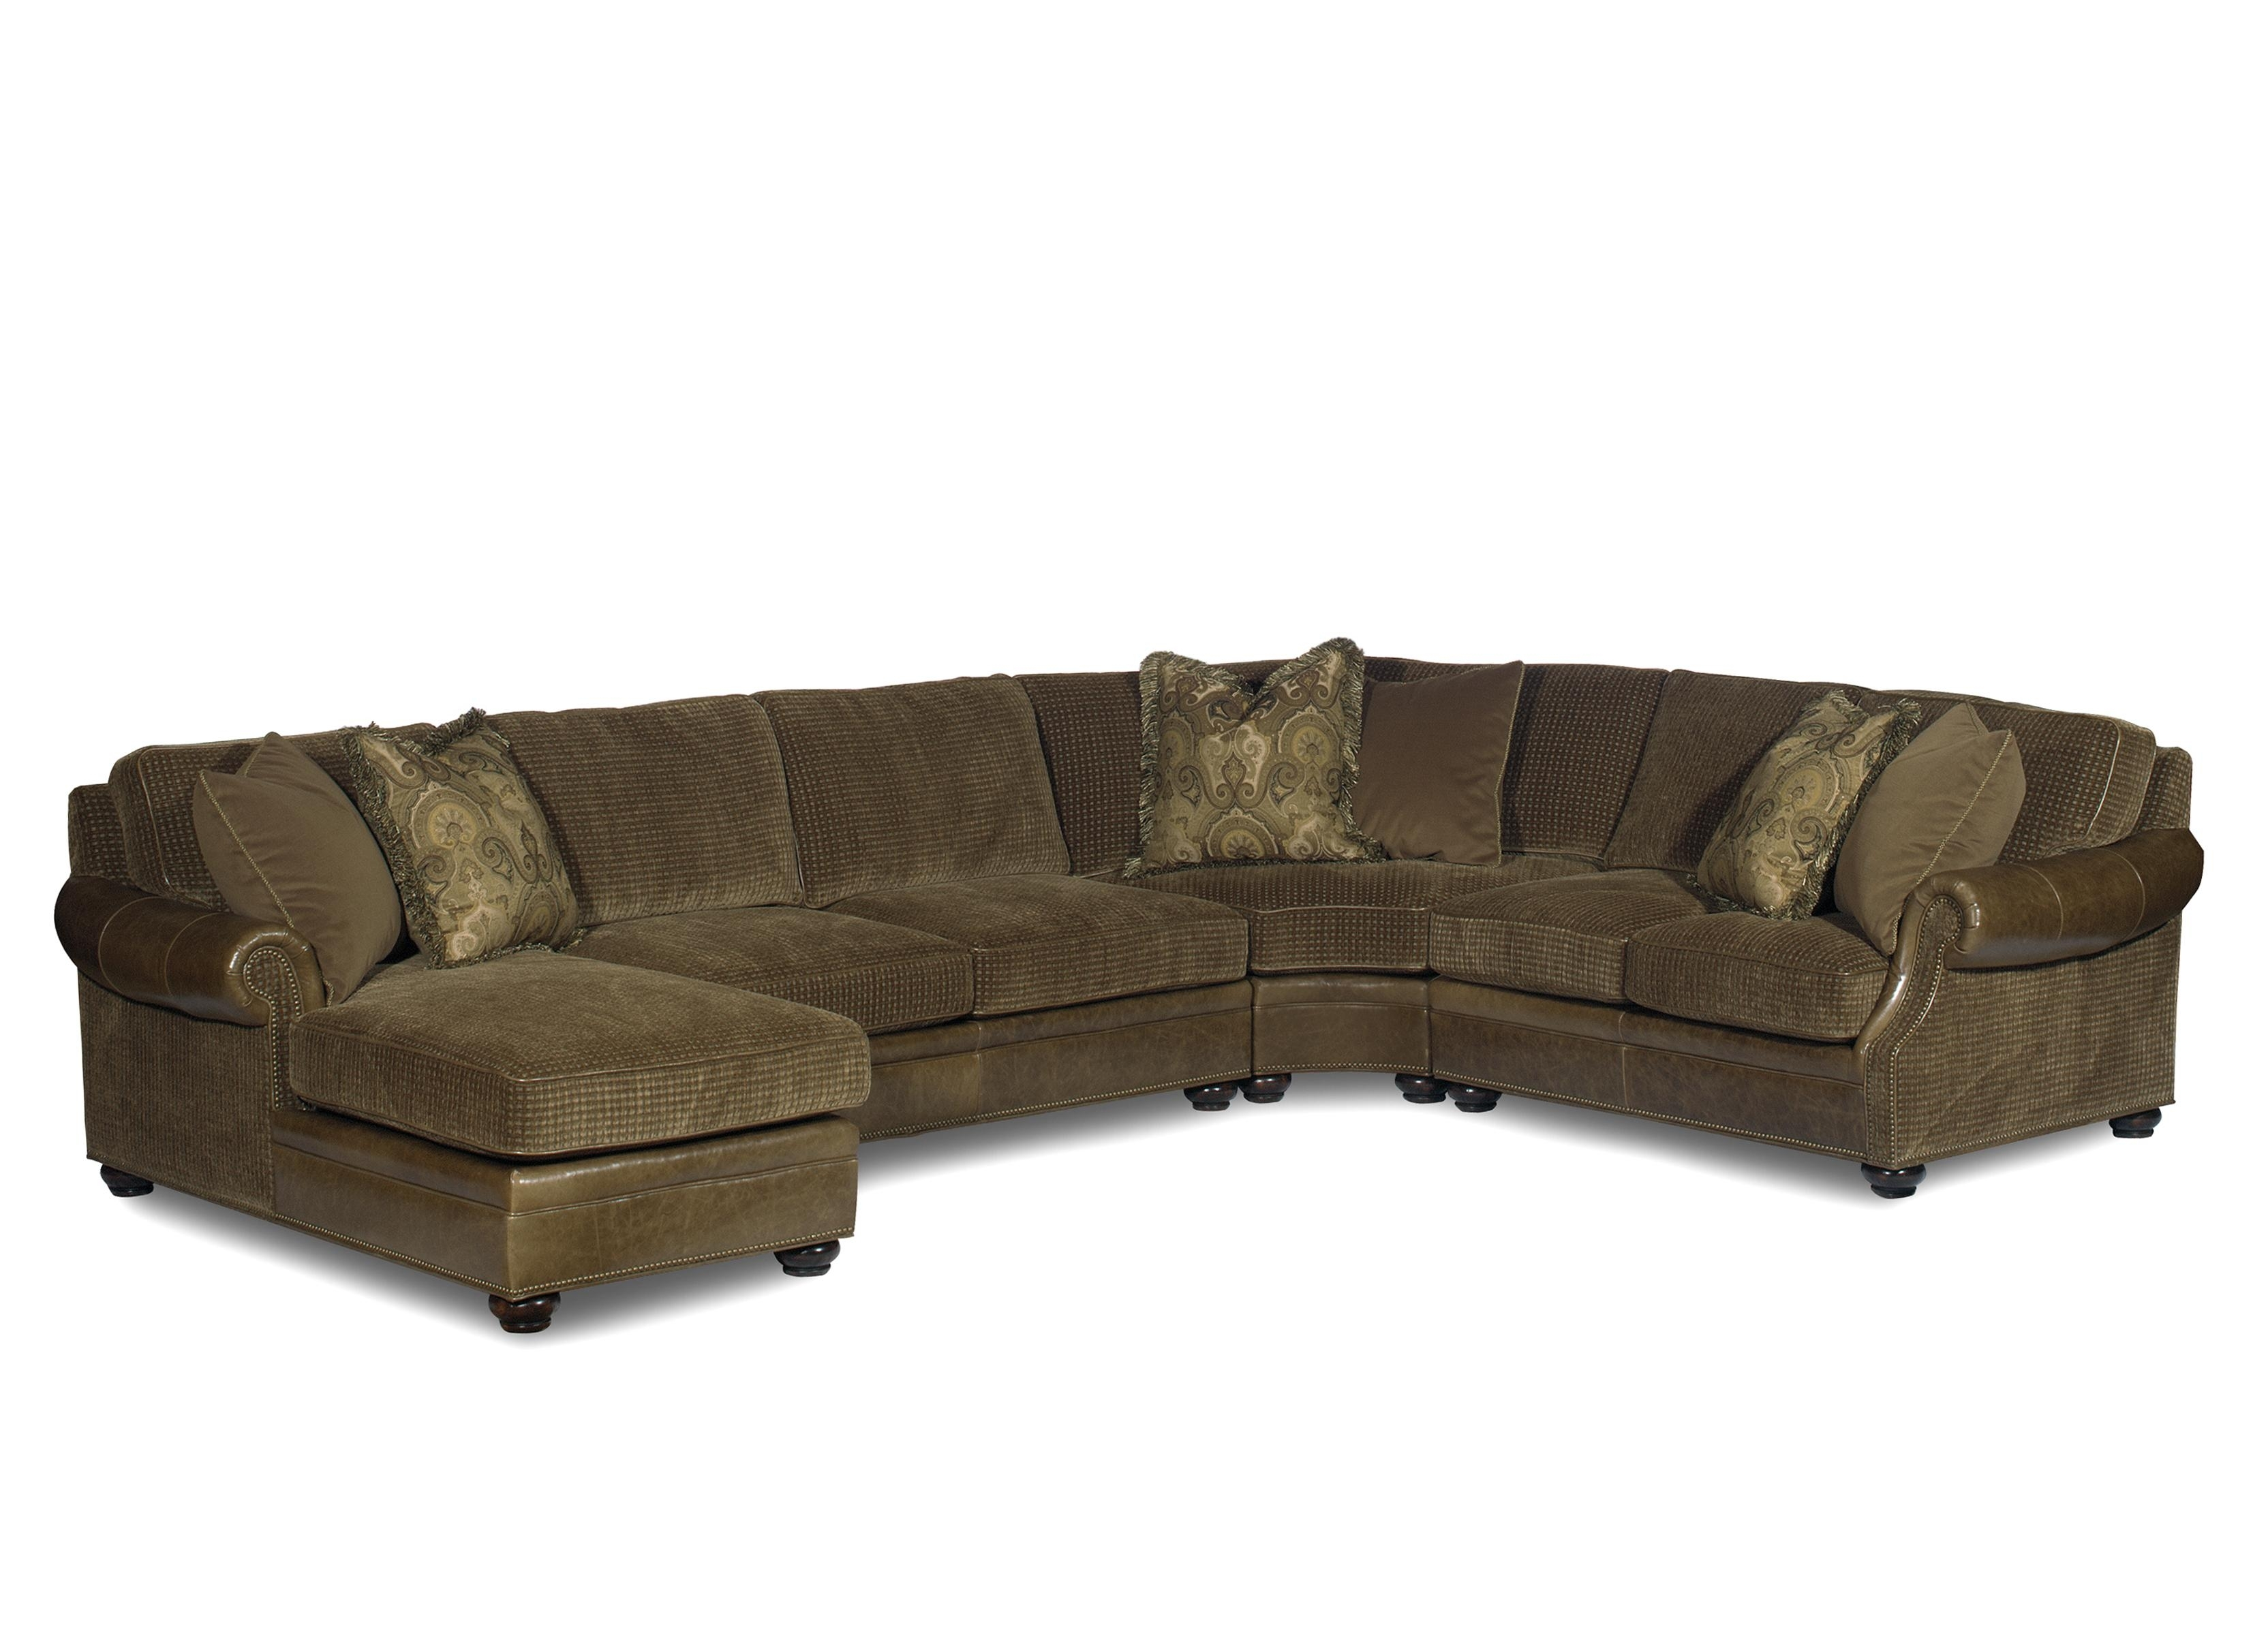 Bradington Young Warner Sectional Sofa With Chaise Lounger – Ahfa With Visalia Ca Sectional Sofas (View 10 of 10)